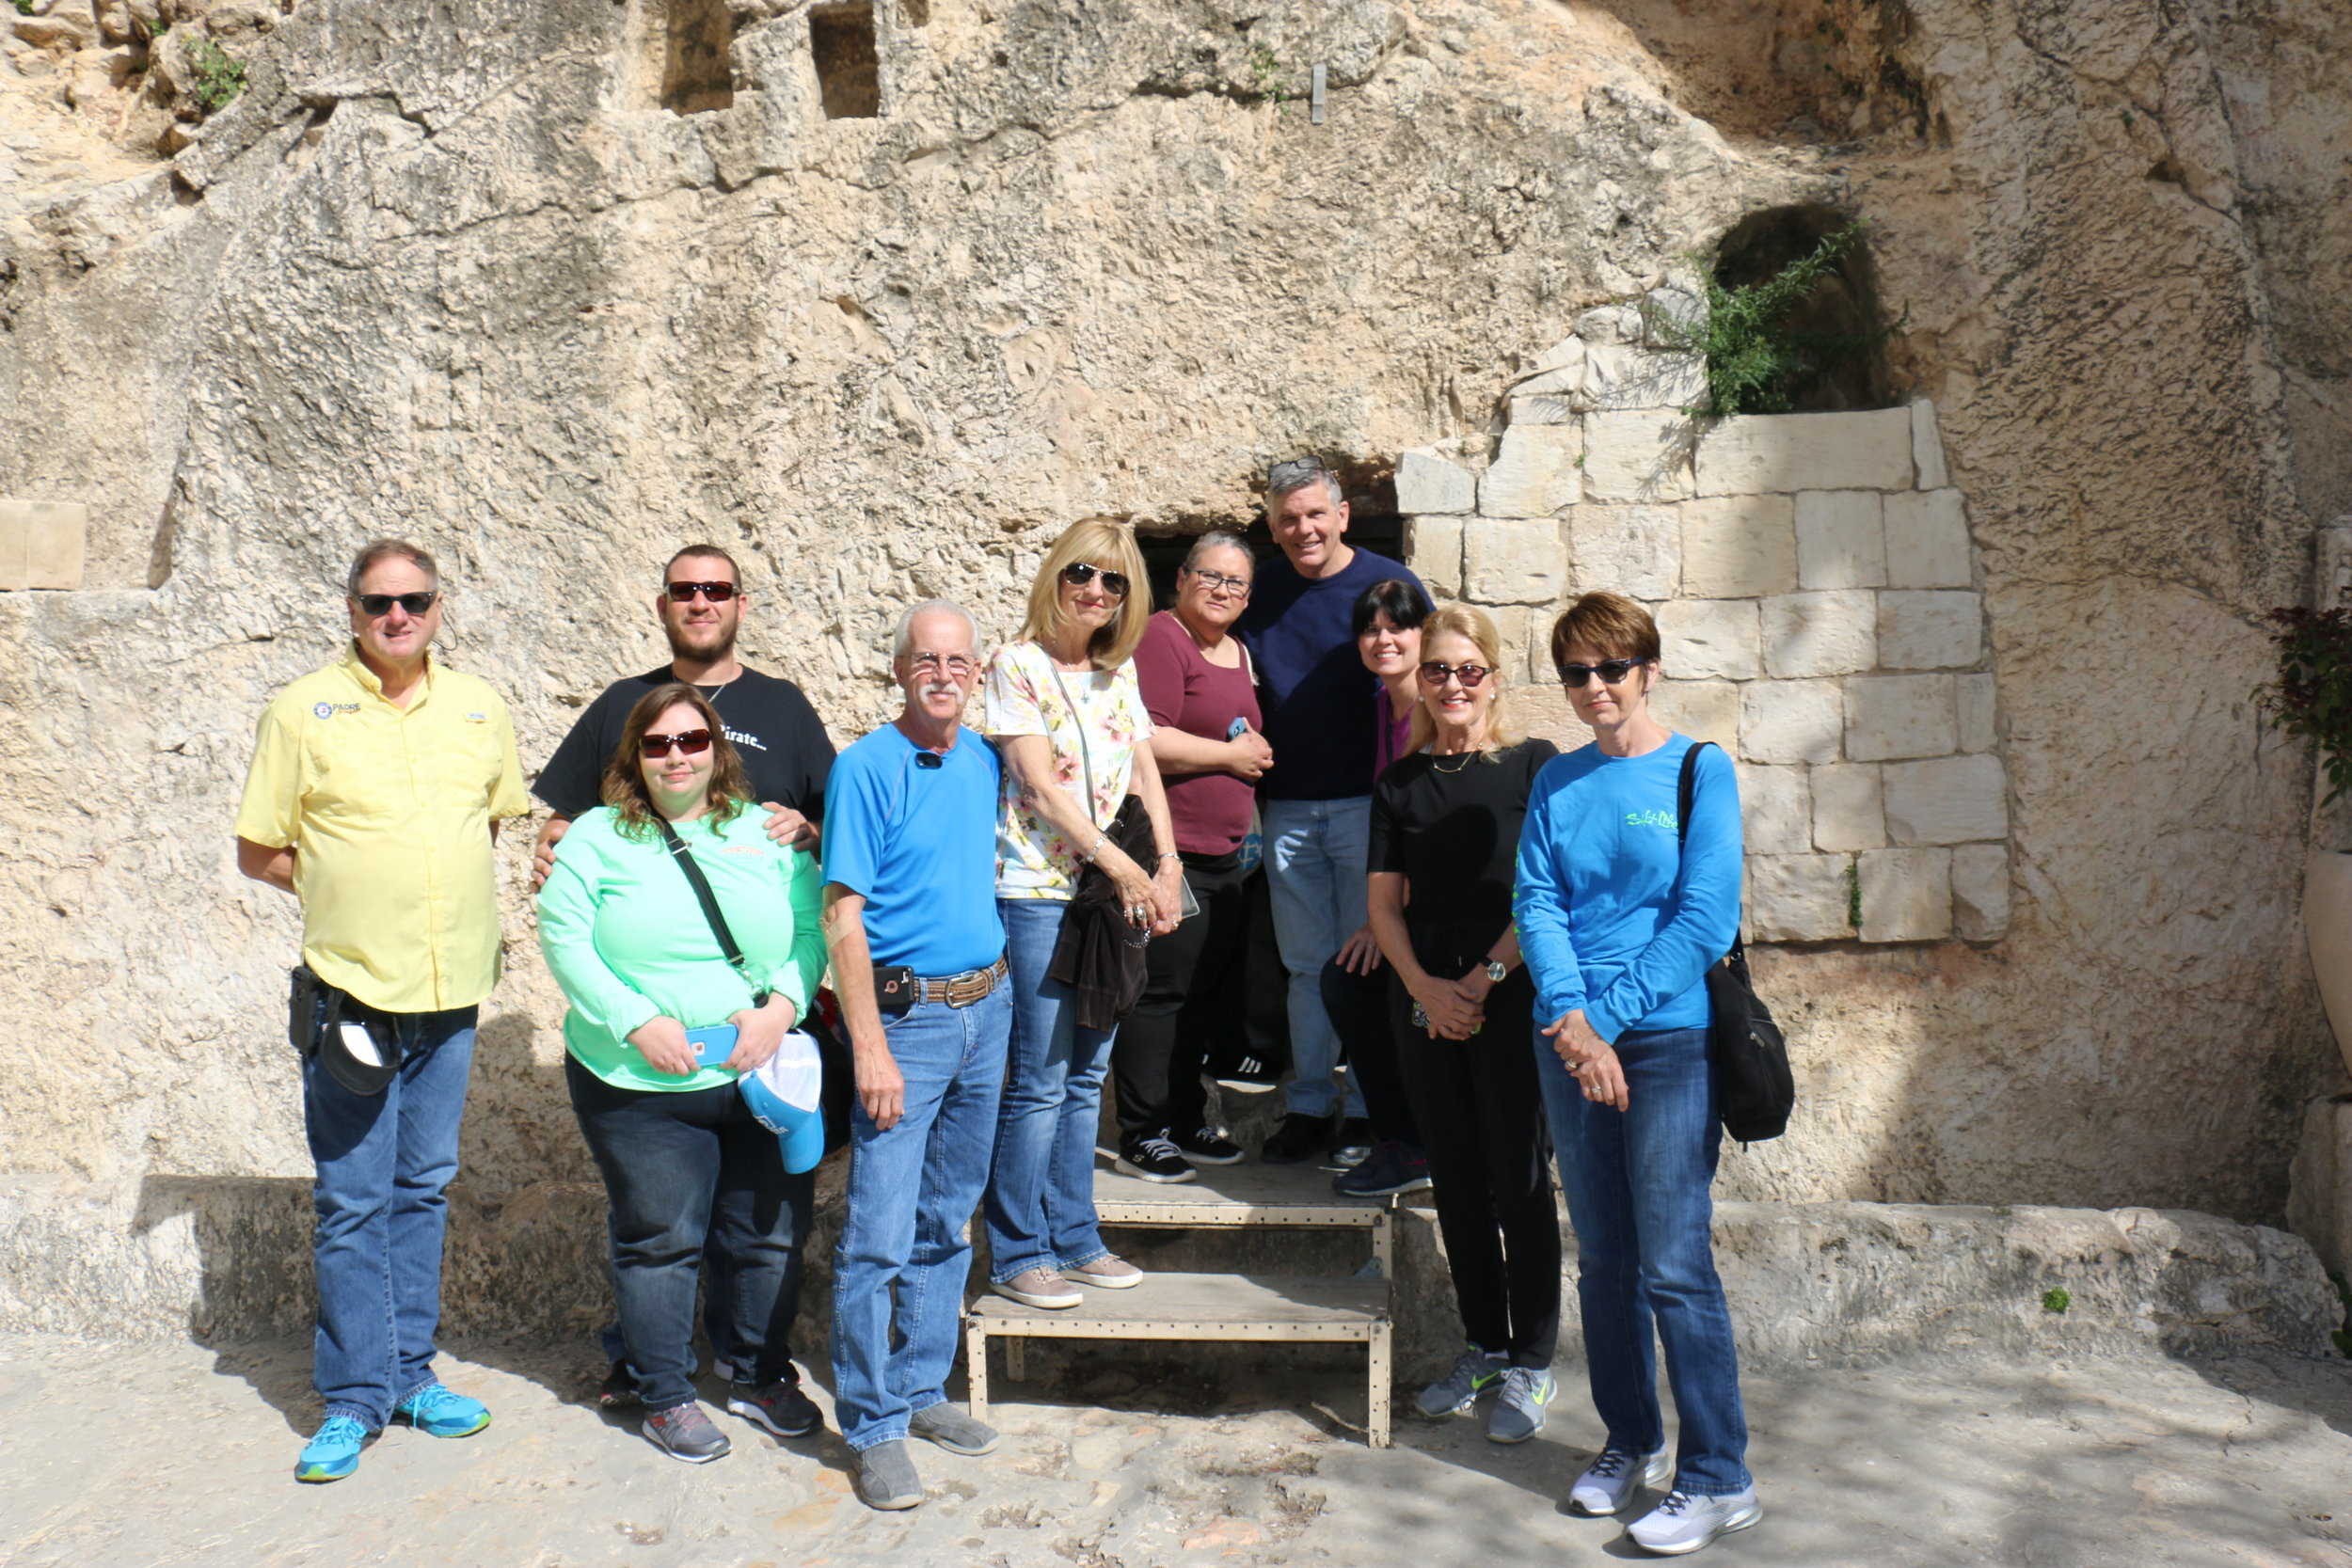 Some members of a retreat standing outside the empty tomb of Christ at The Garden Tomb